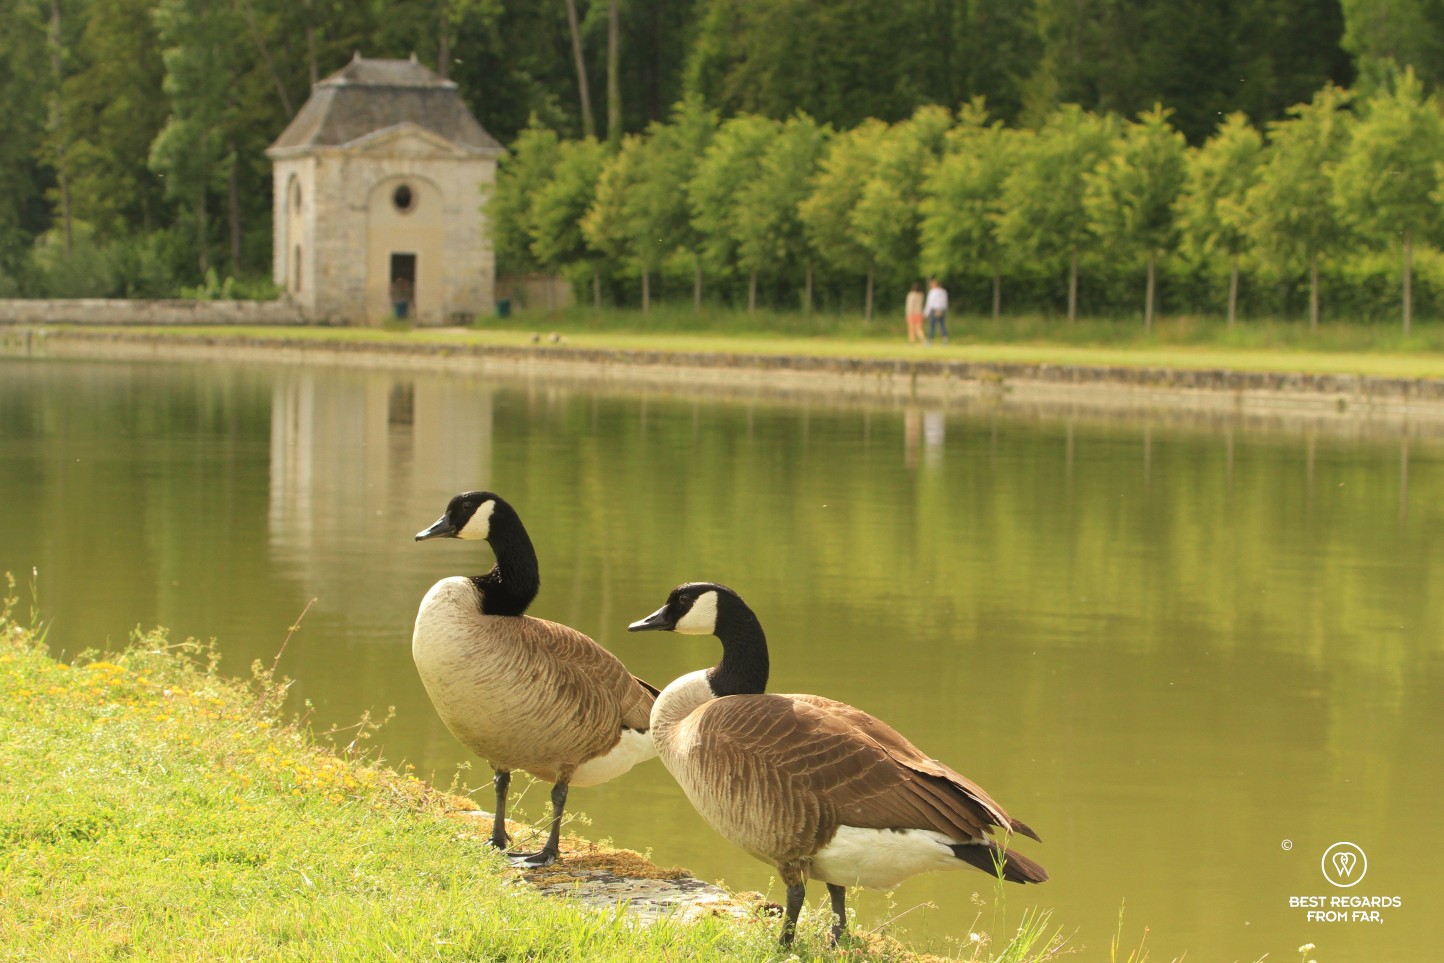 A couple of geese in the gardens of the castle of Vaux le Vicomte by the canal.